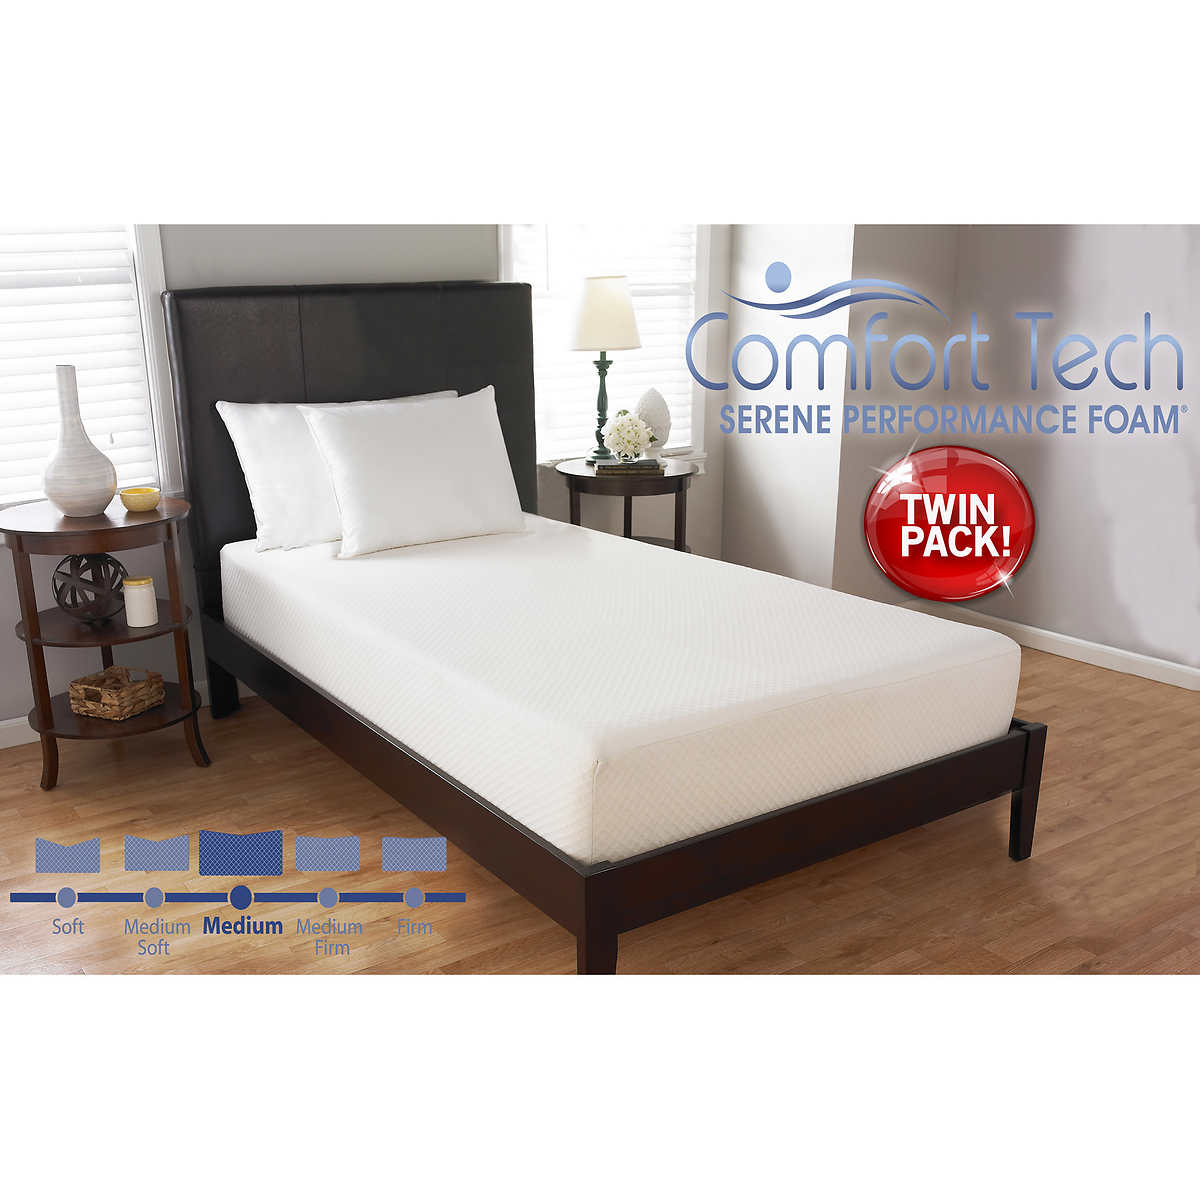 luxury twin bed frame and mattress set 03c in home remodel ideas with